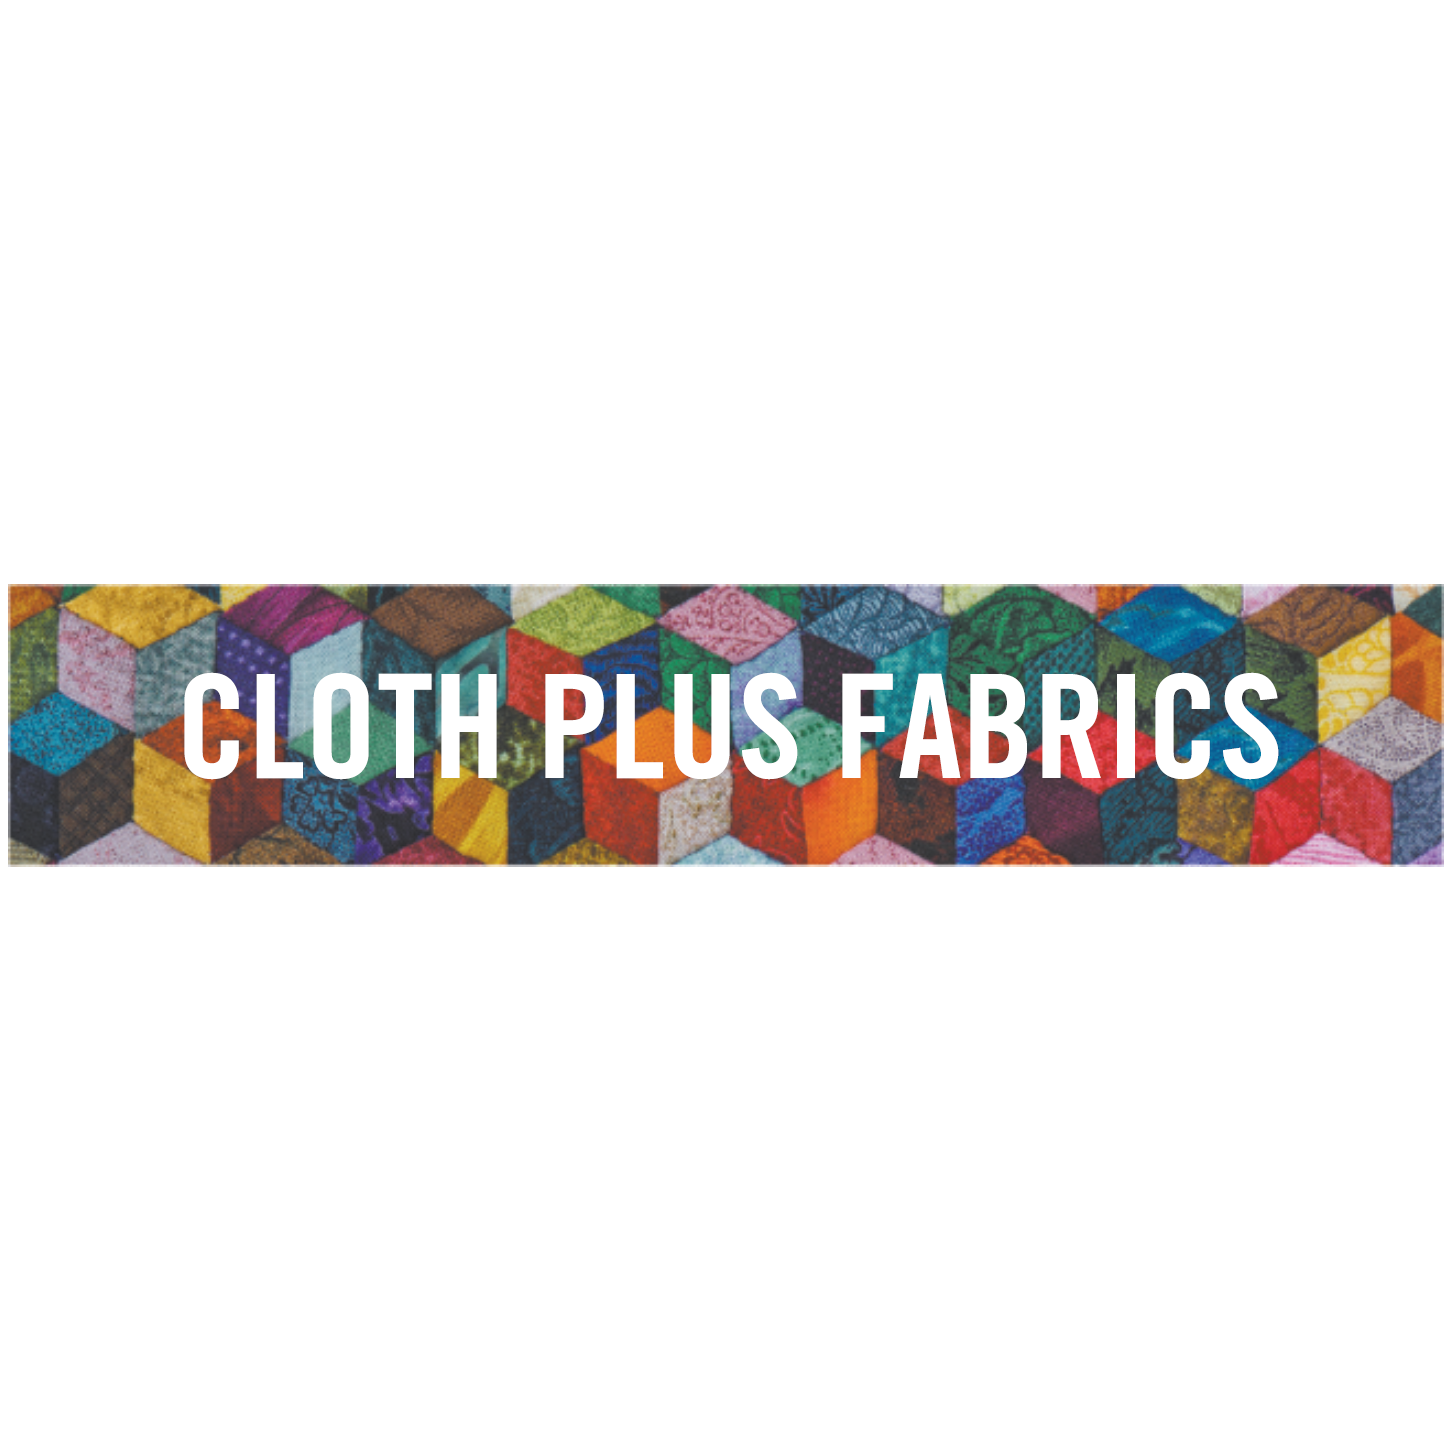 Cloth Plus Fabrics